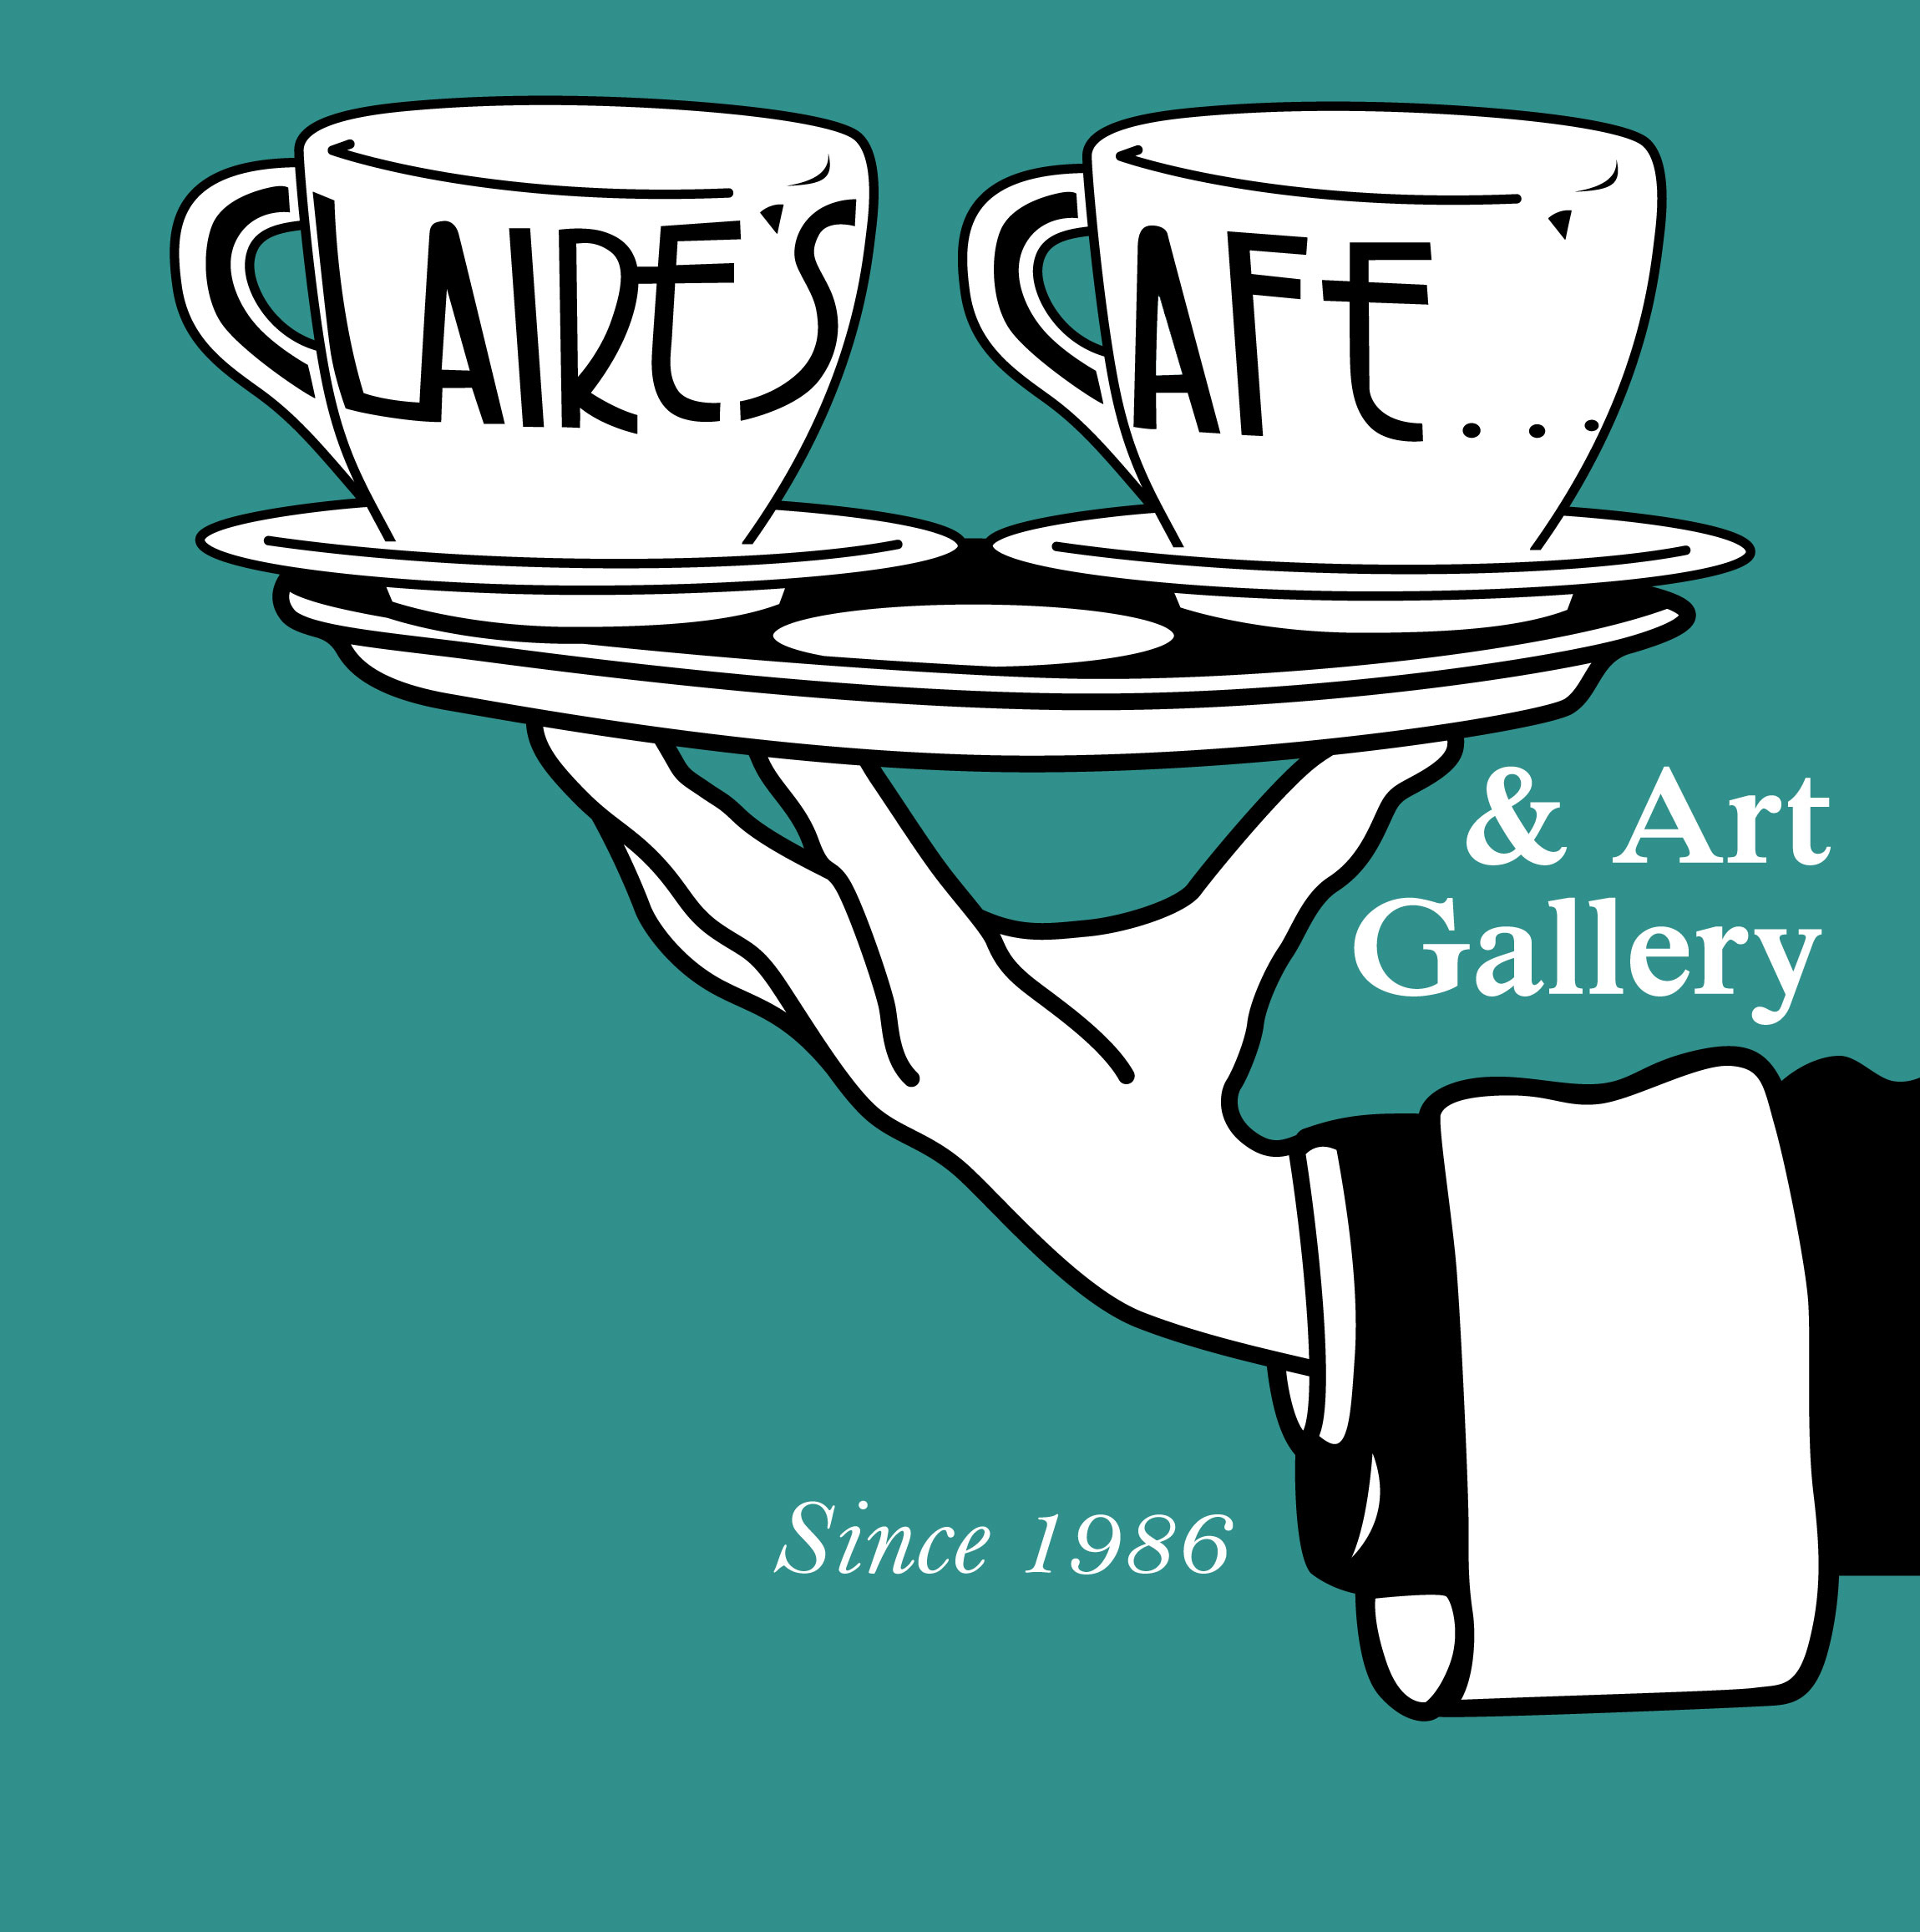 Claire's Cafe & Art Gallery